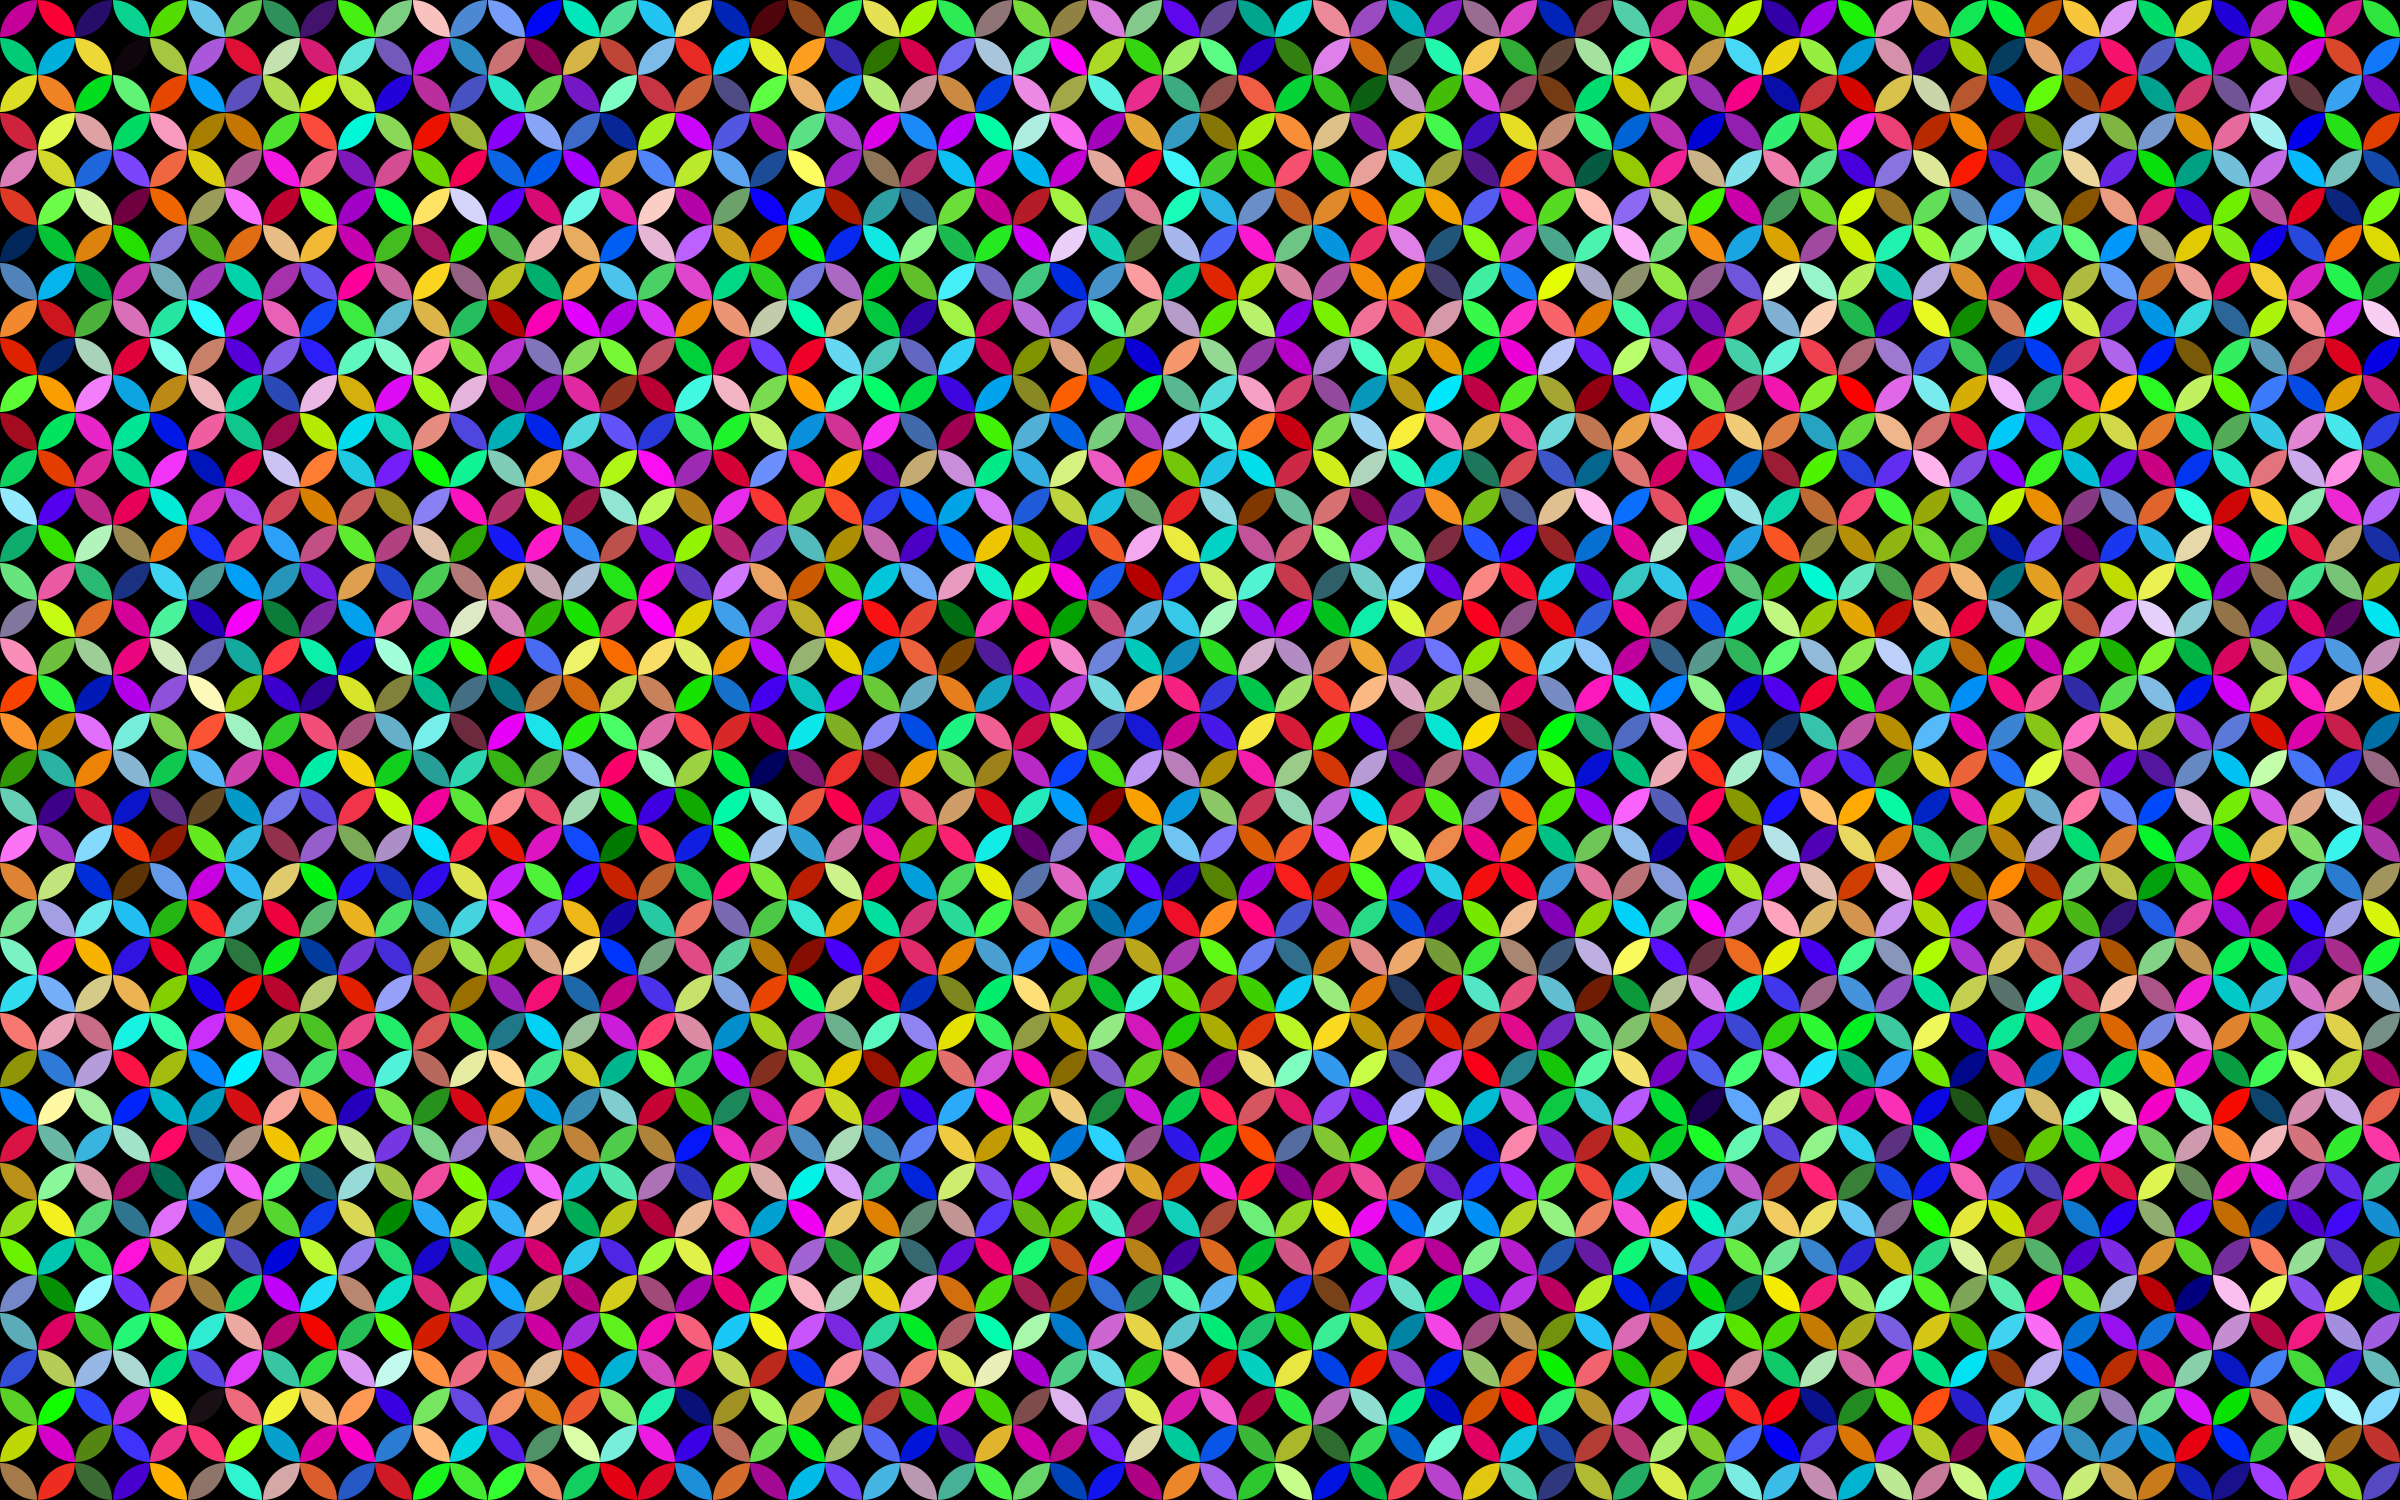 Prismatic Curved Diamond Pattern by GDJ